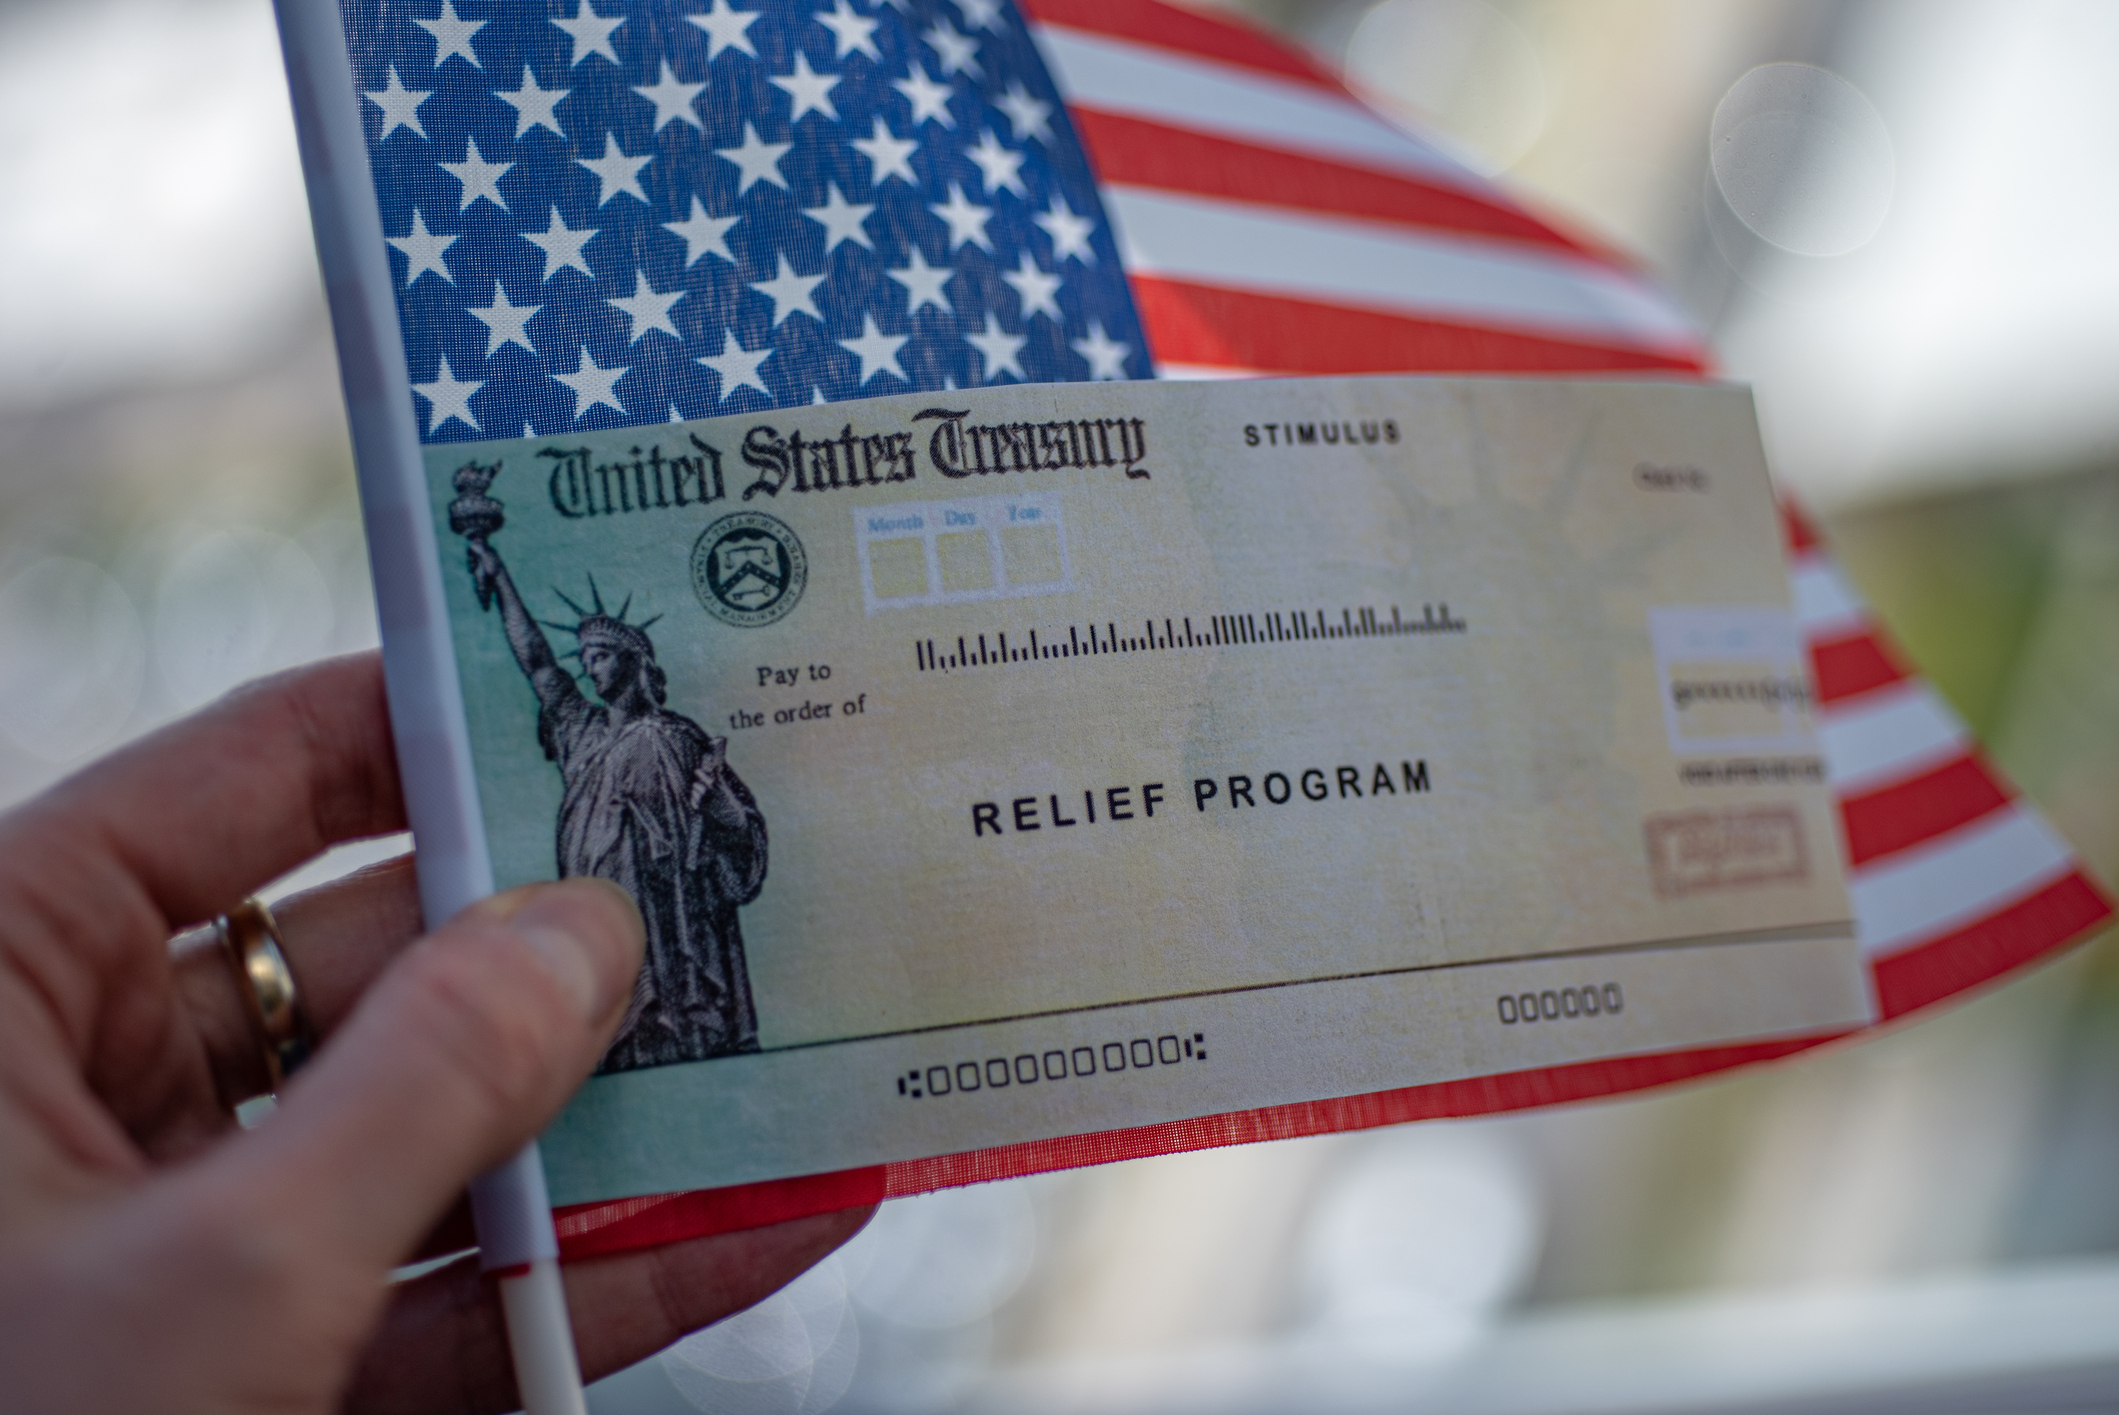 COVID-19 economic Stimulus check on blurred USA flag background. Relief program concept.